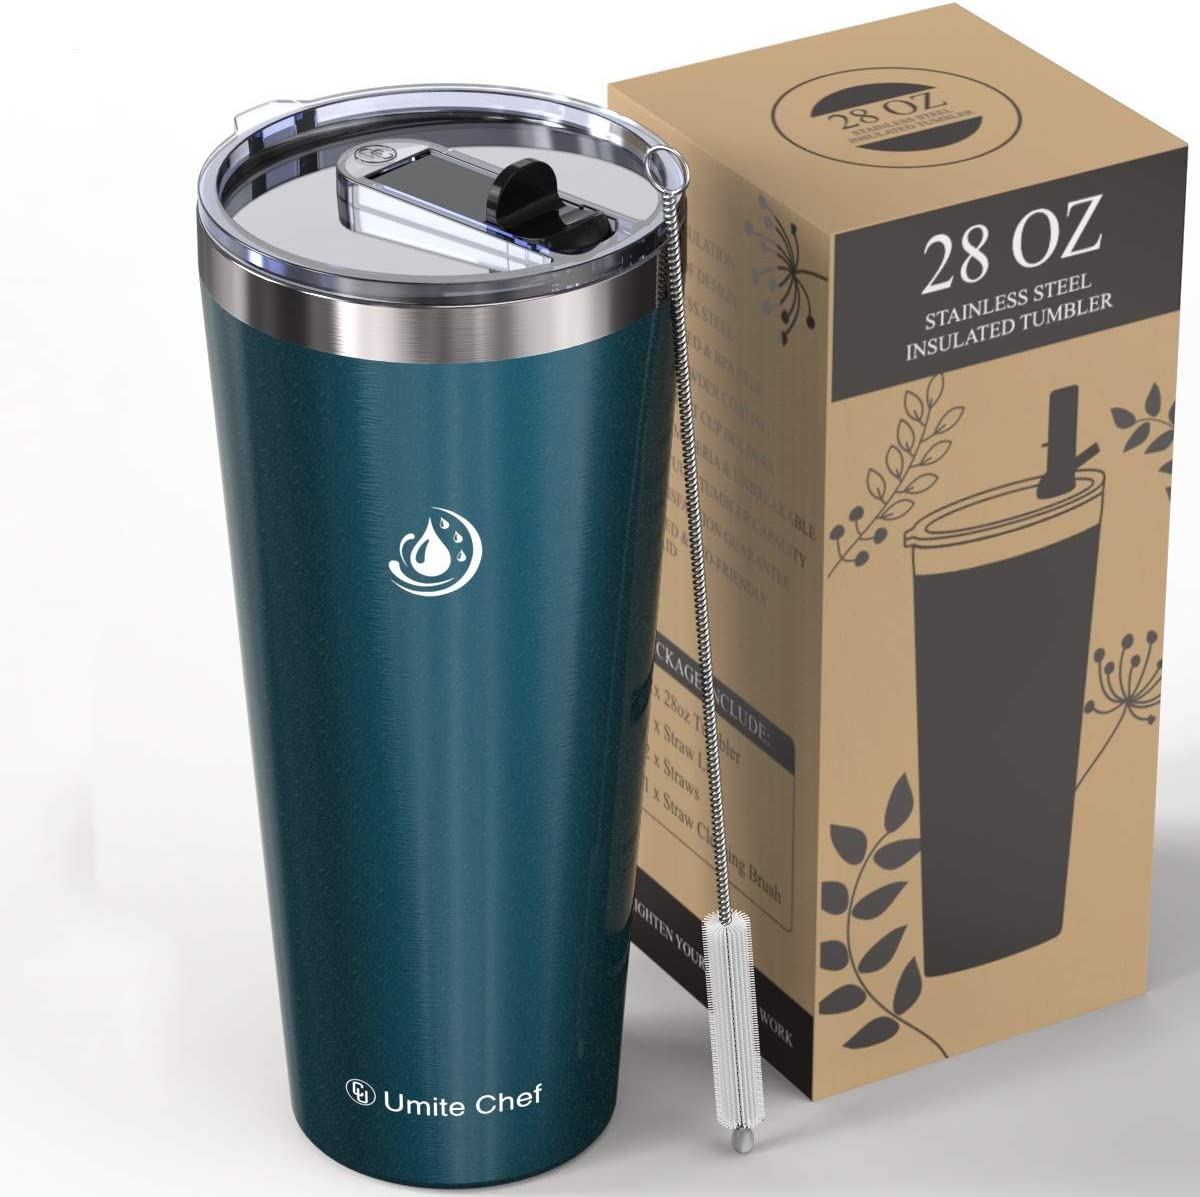 Umite Chef 28oz Tumbler Double Wall Stainless Steel Vacuum Travel Mug Tumbler with Lid, Insulated Coffee Mug Cup, 2 Straws, for Home, Outdoor, Office, School,(Blue Green)